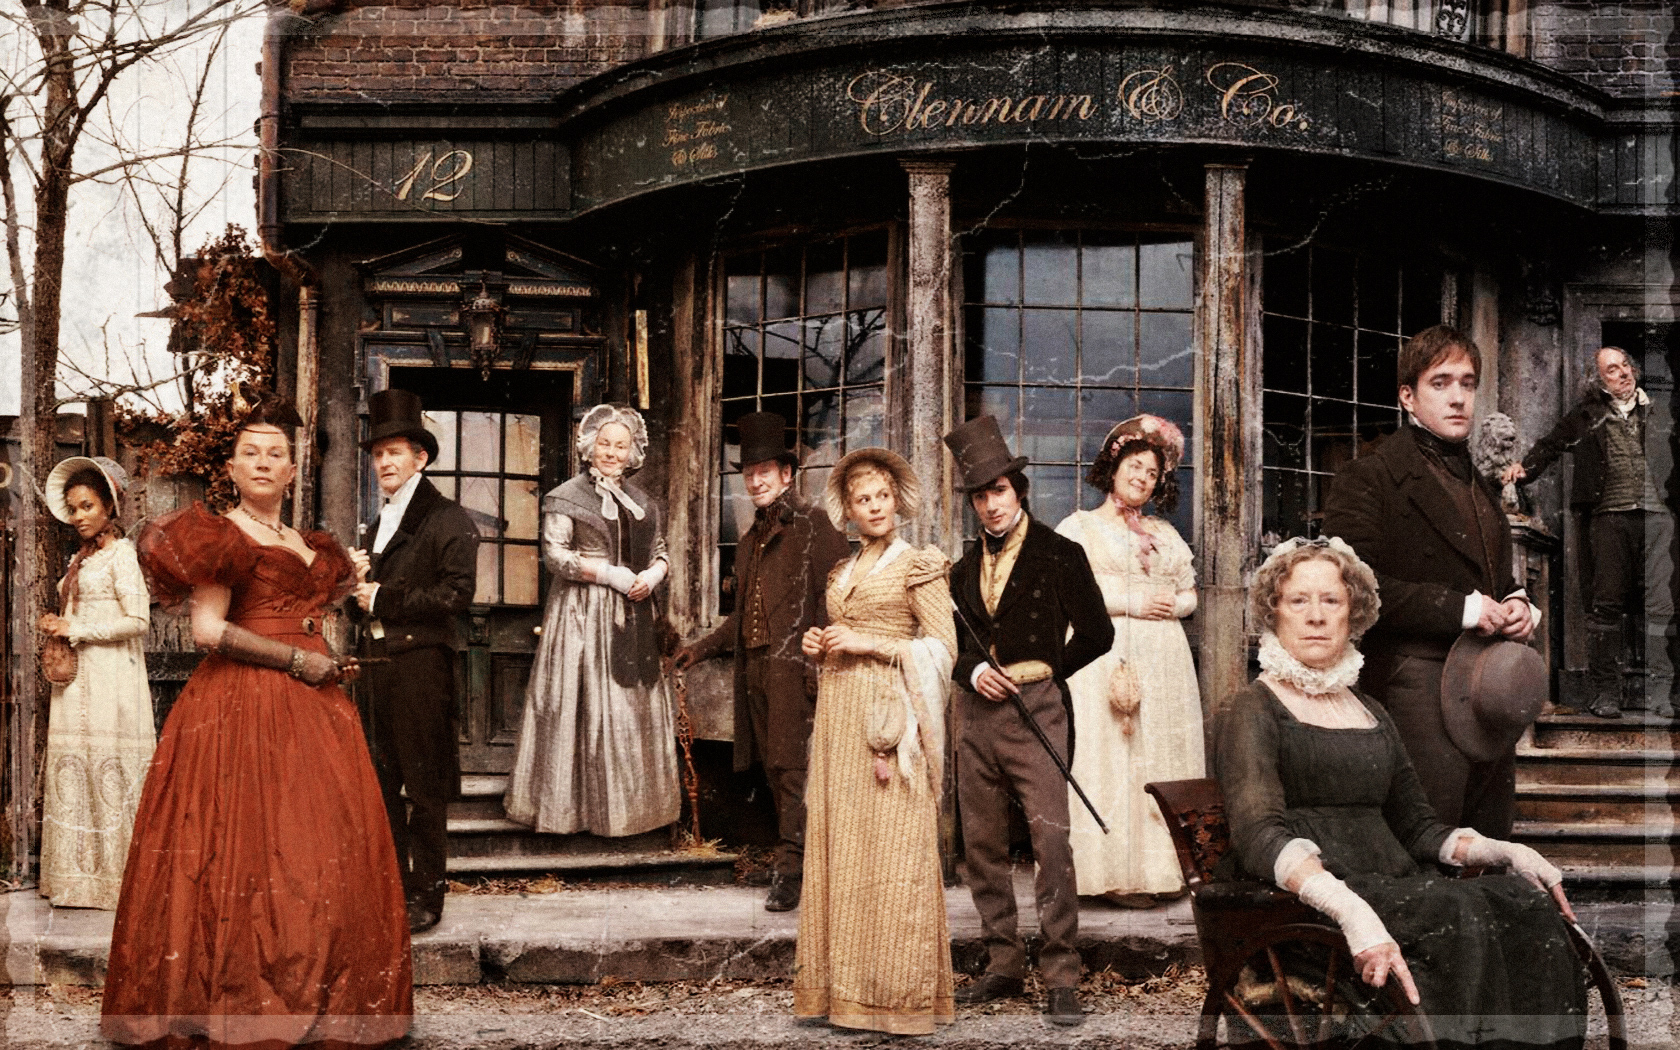 an analysis of the victorian society in novels by charles dickens The importance of charles dickens in victorian social  the importance of charles dickens in victorian  contain a radical vision of victorian society, dickens.